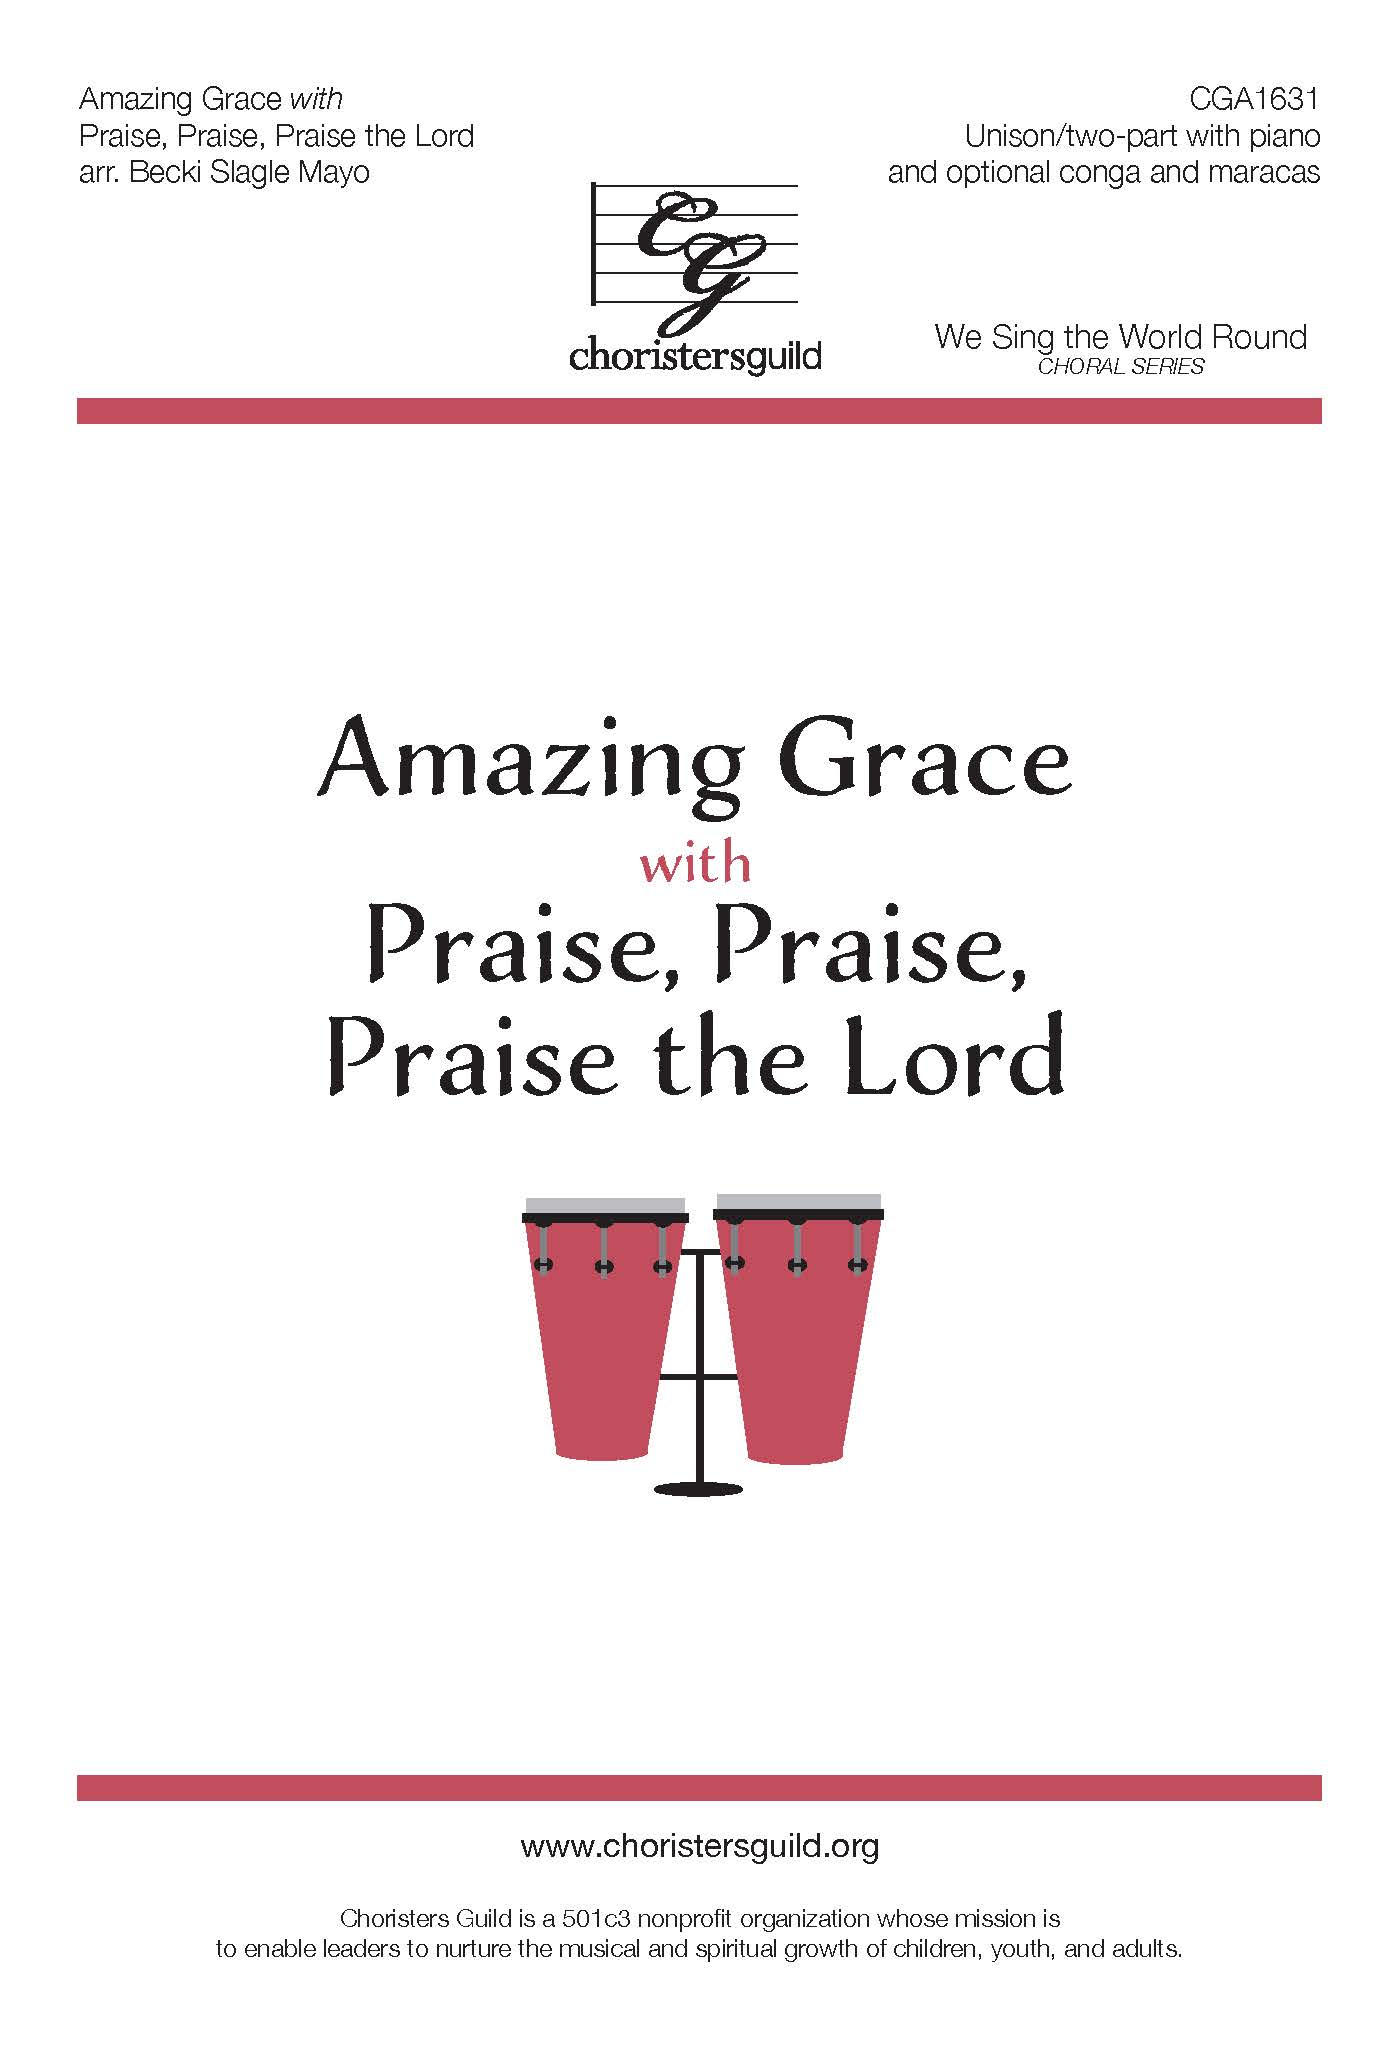 Amazing Grace with Praise, Praise, Praise the Lord - Unison/Two-part